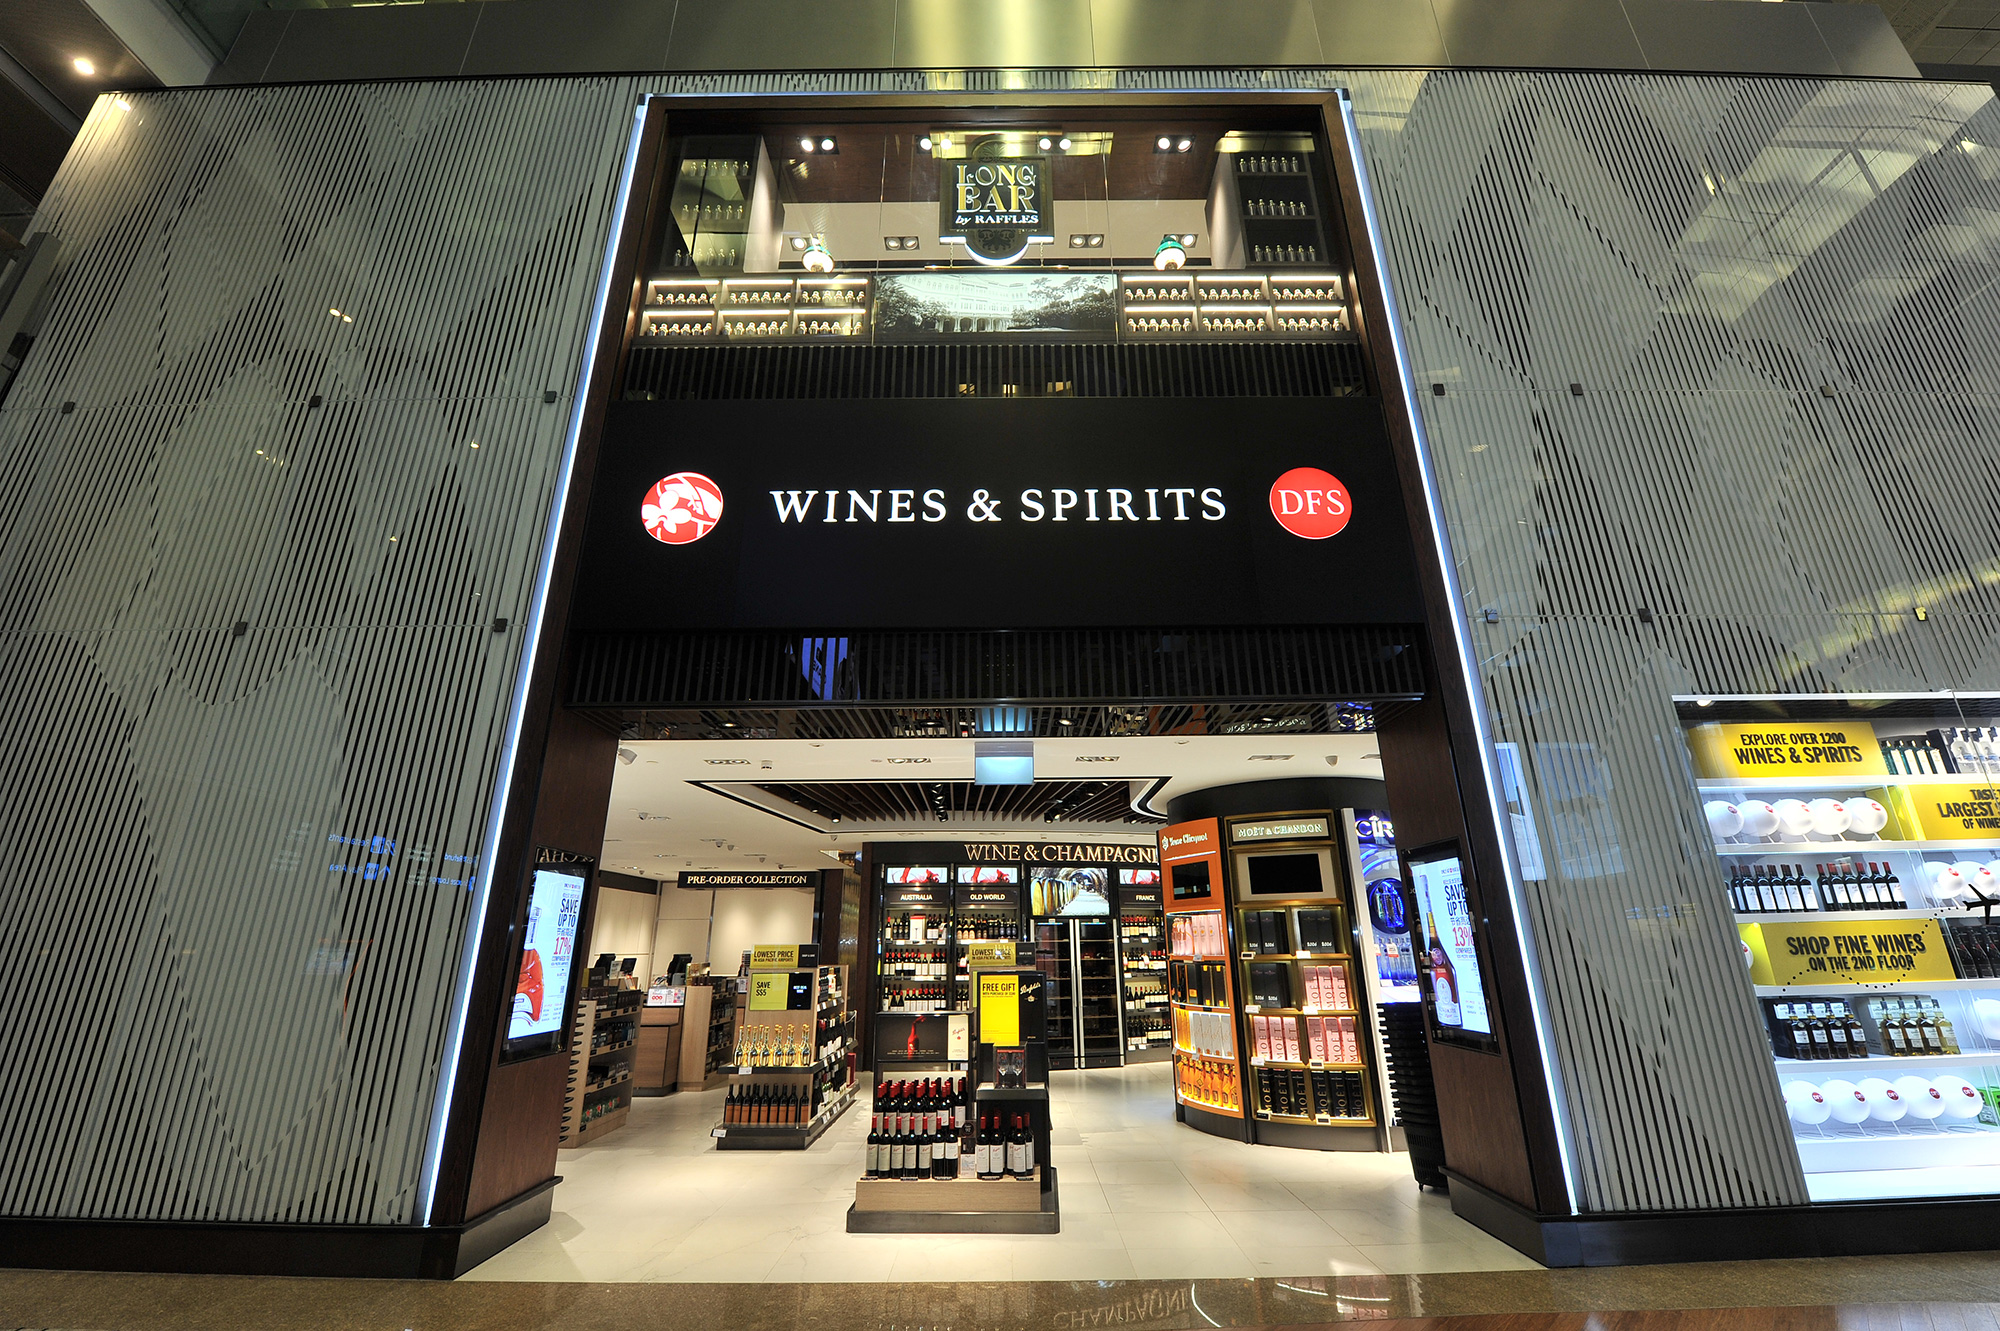 DFS-Wines-&-Spirits-Flagship-Store,-T3